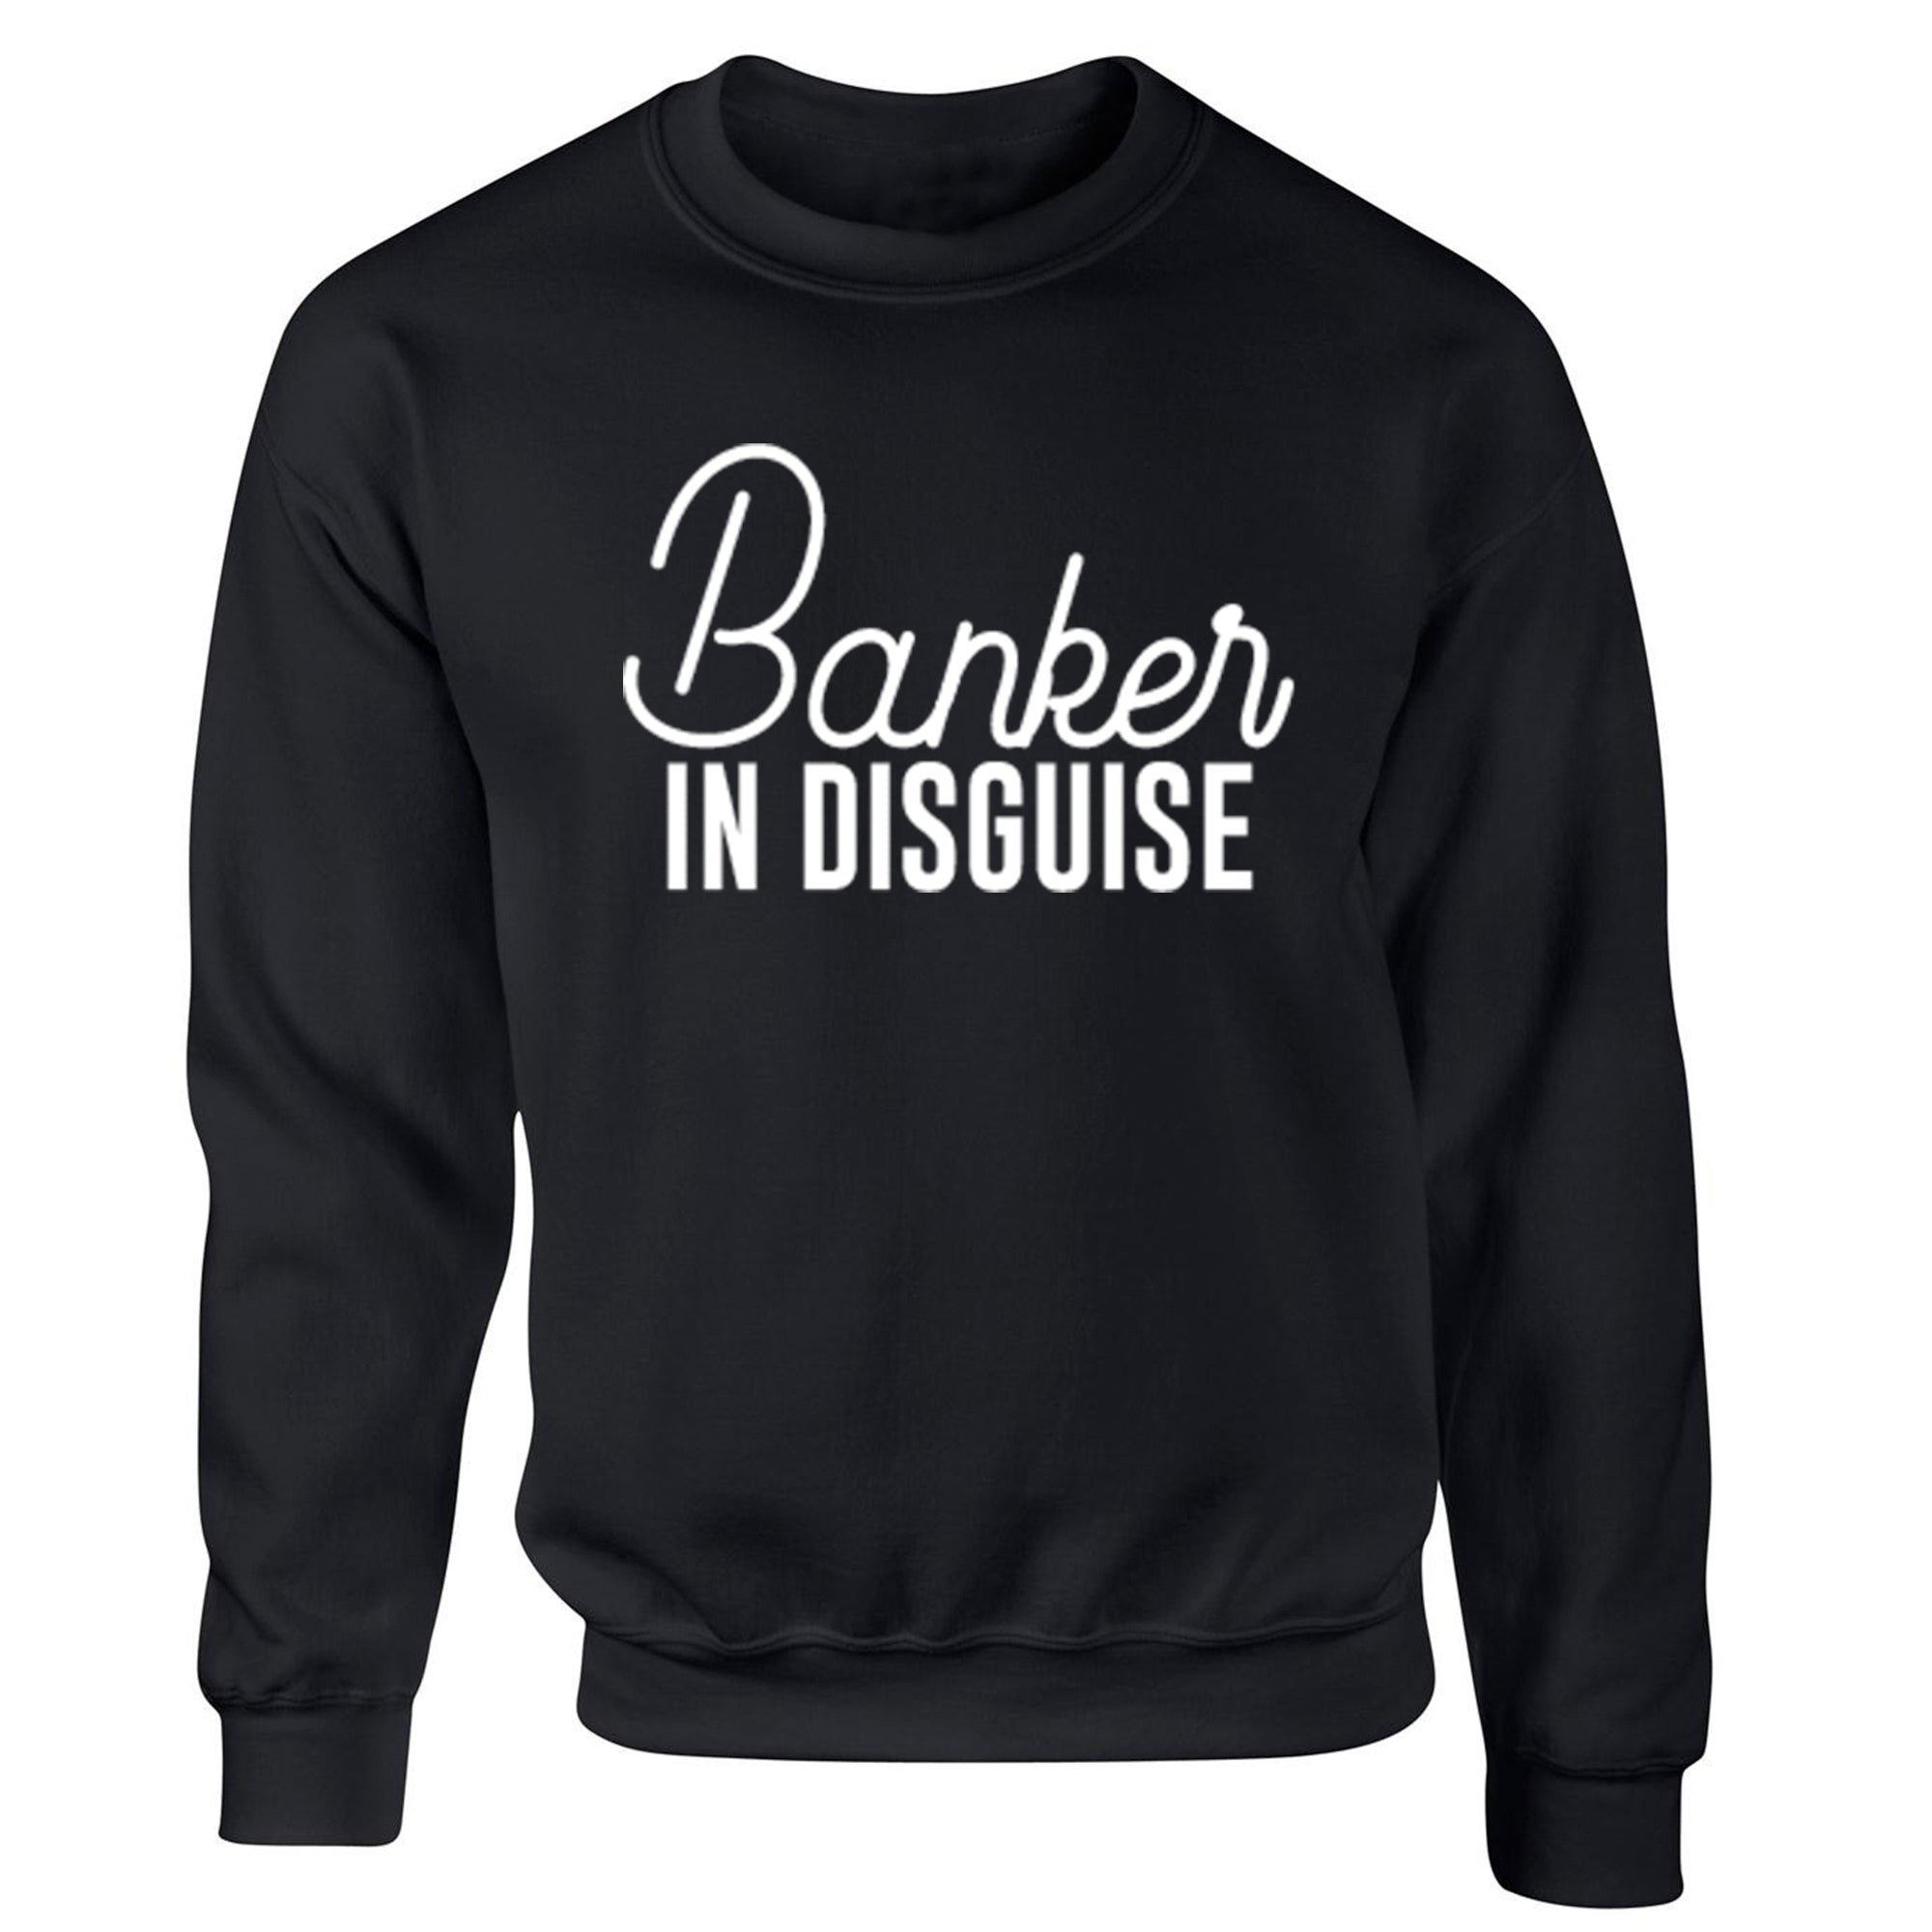 Banker In Disguise Unisex Jumper S0074 - Illustrated Identity Ltd.